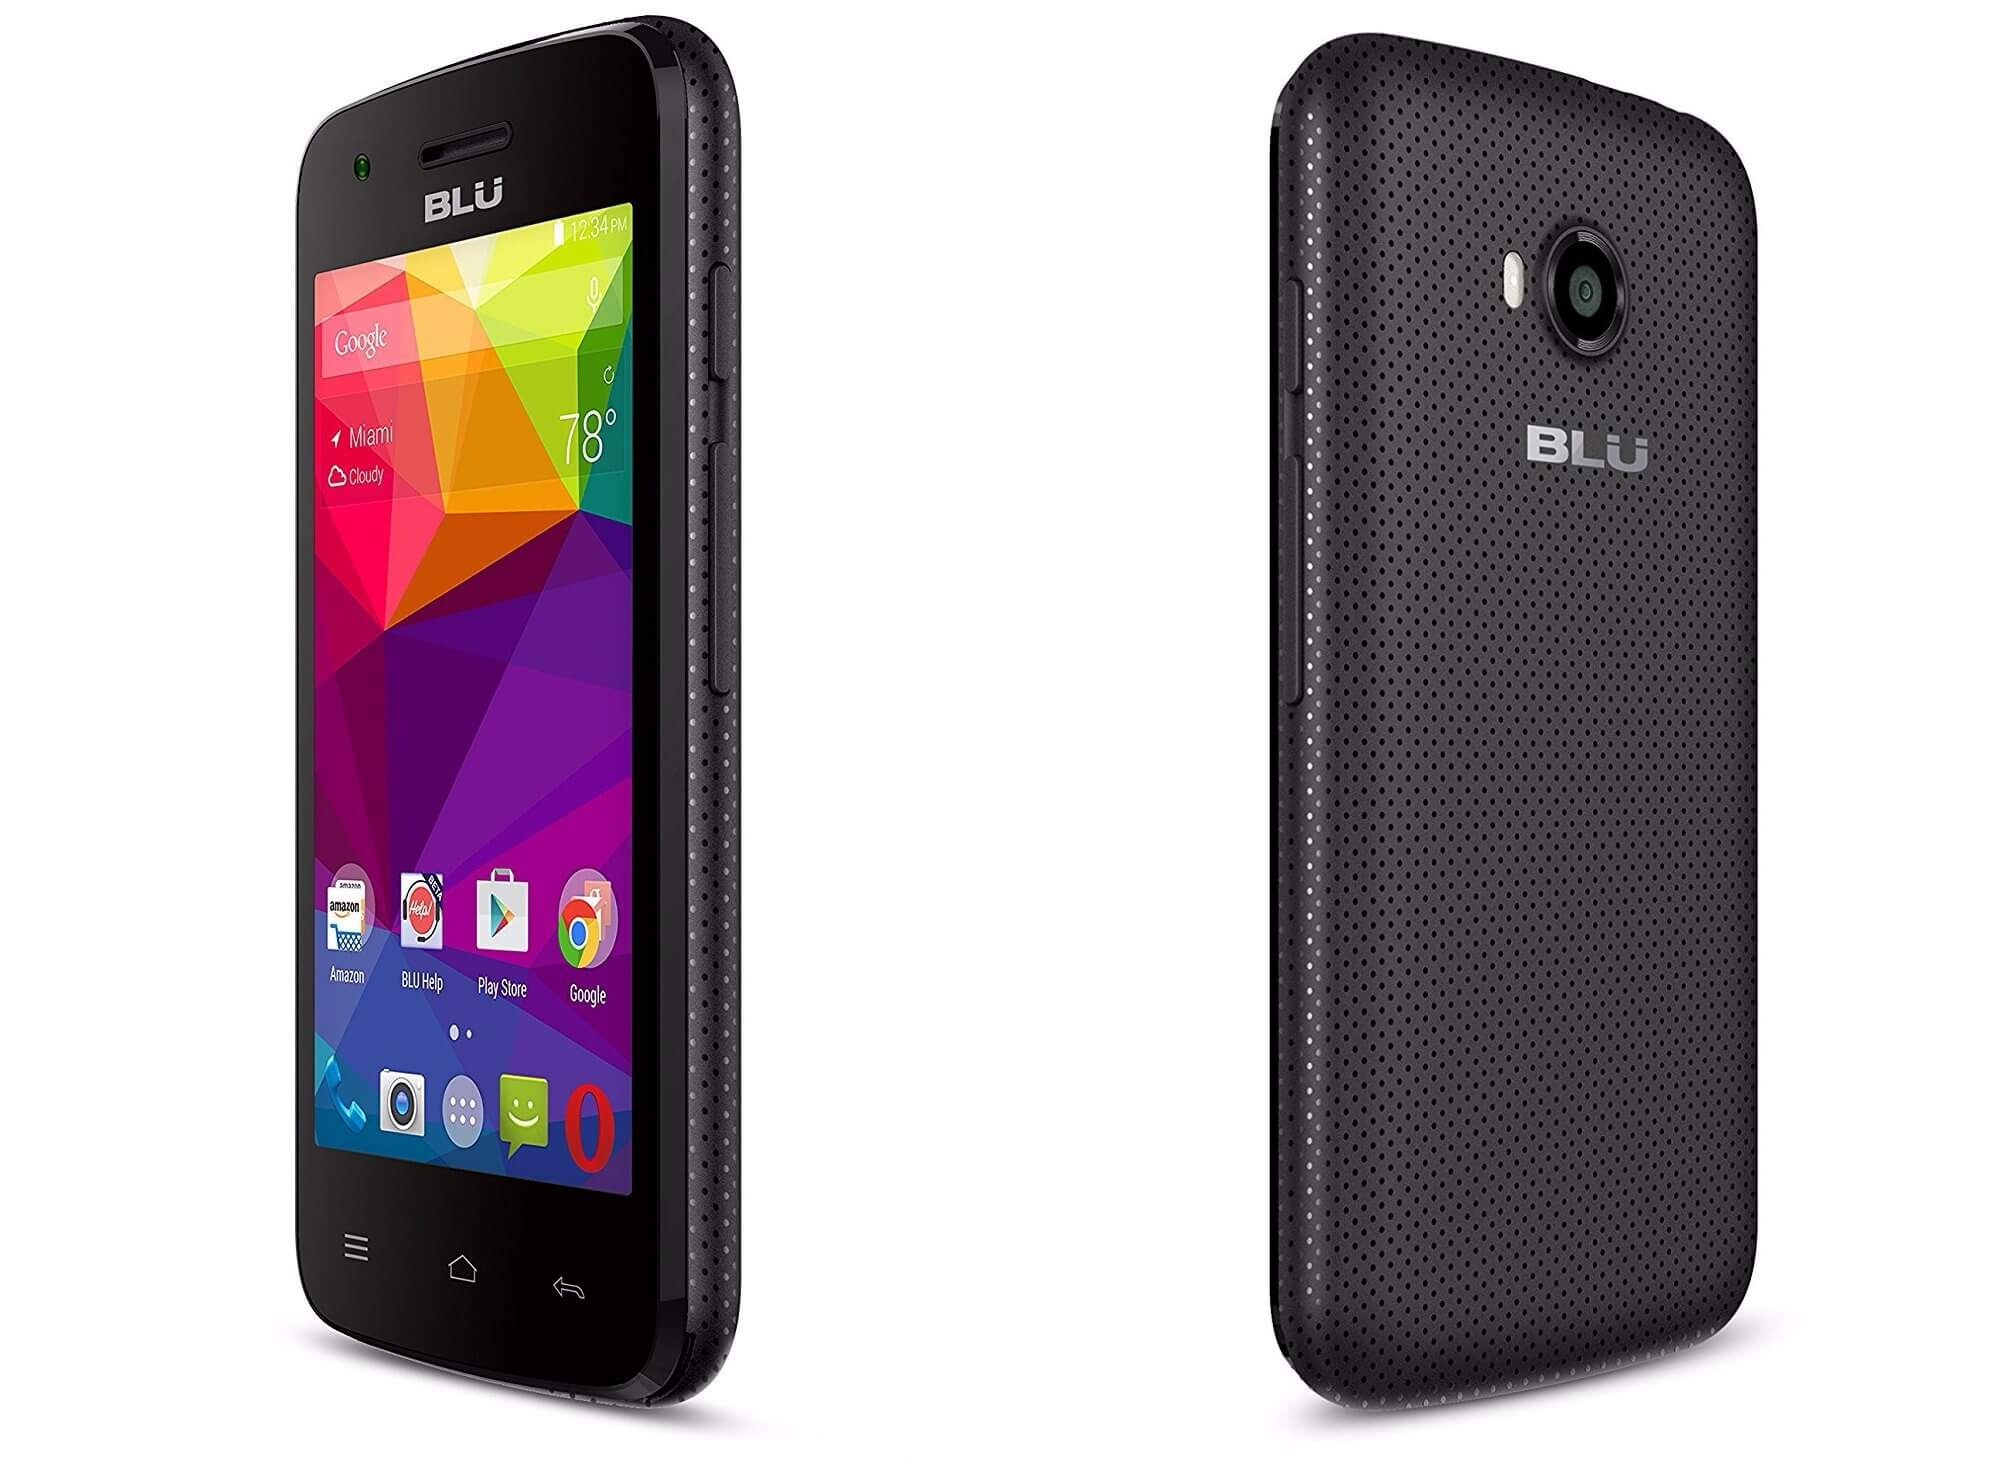 Best Mobile Phone for a Teenager